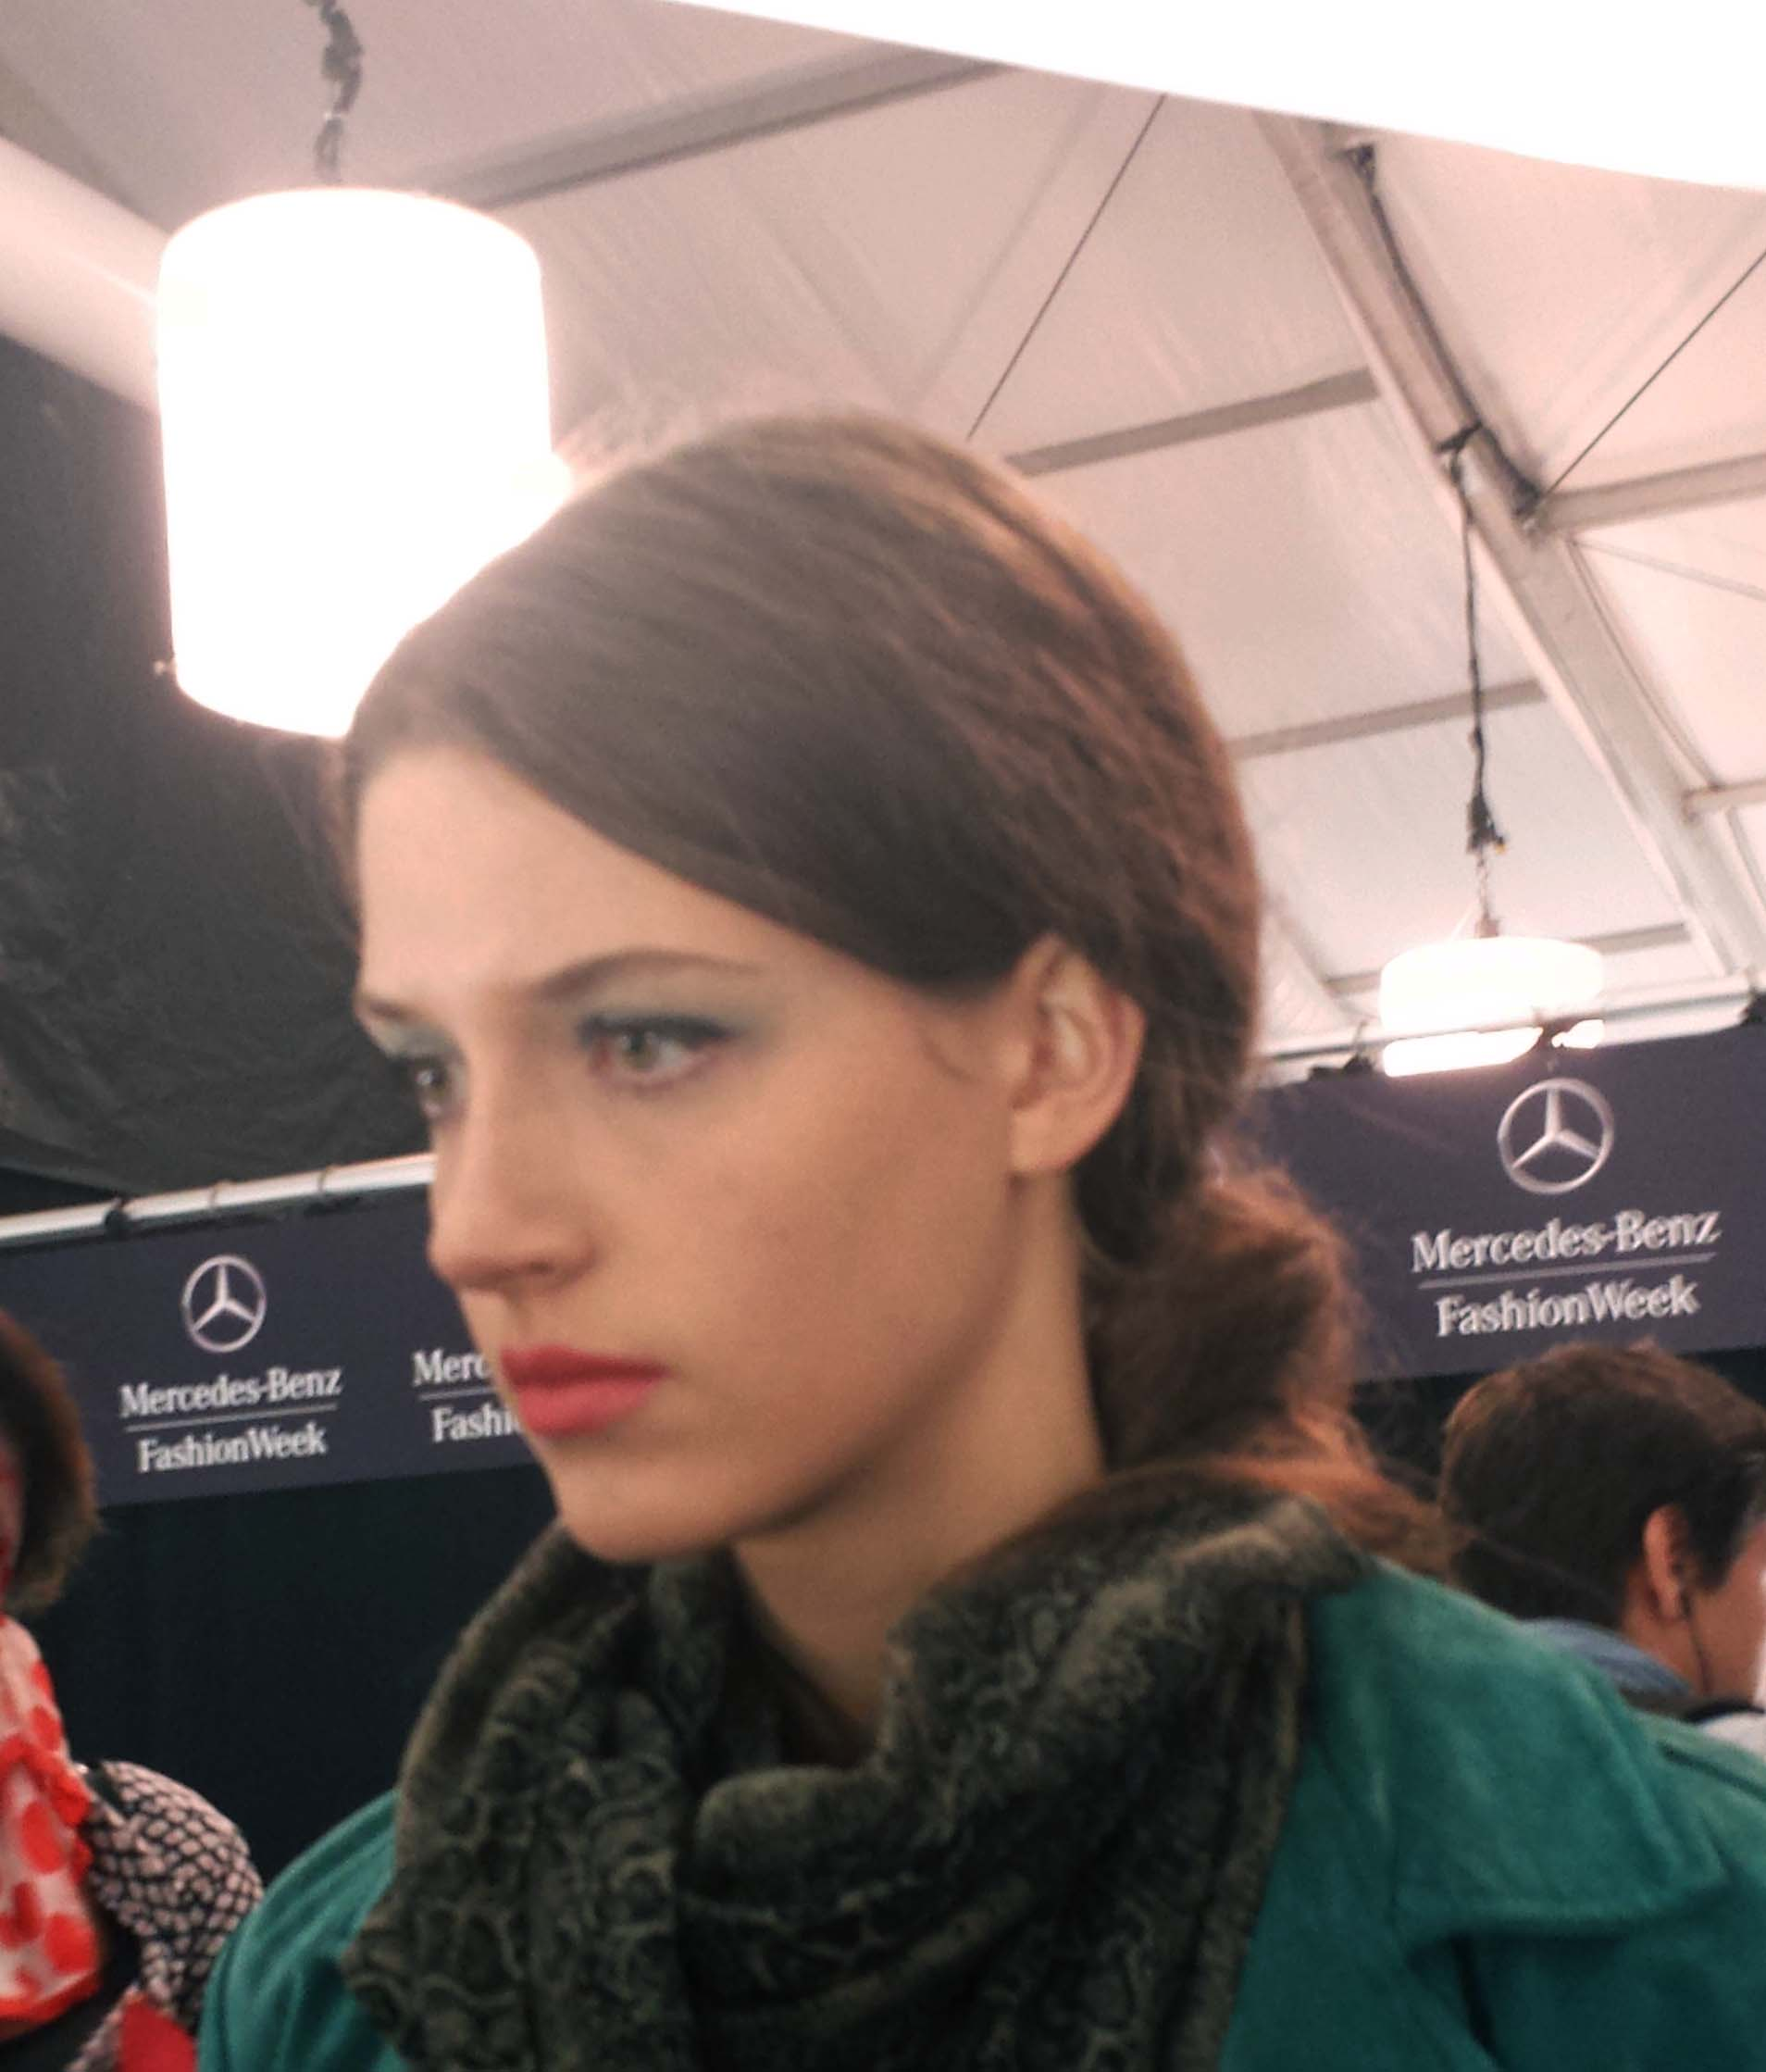 The make-up look on the model.